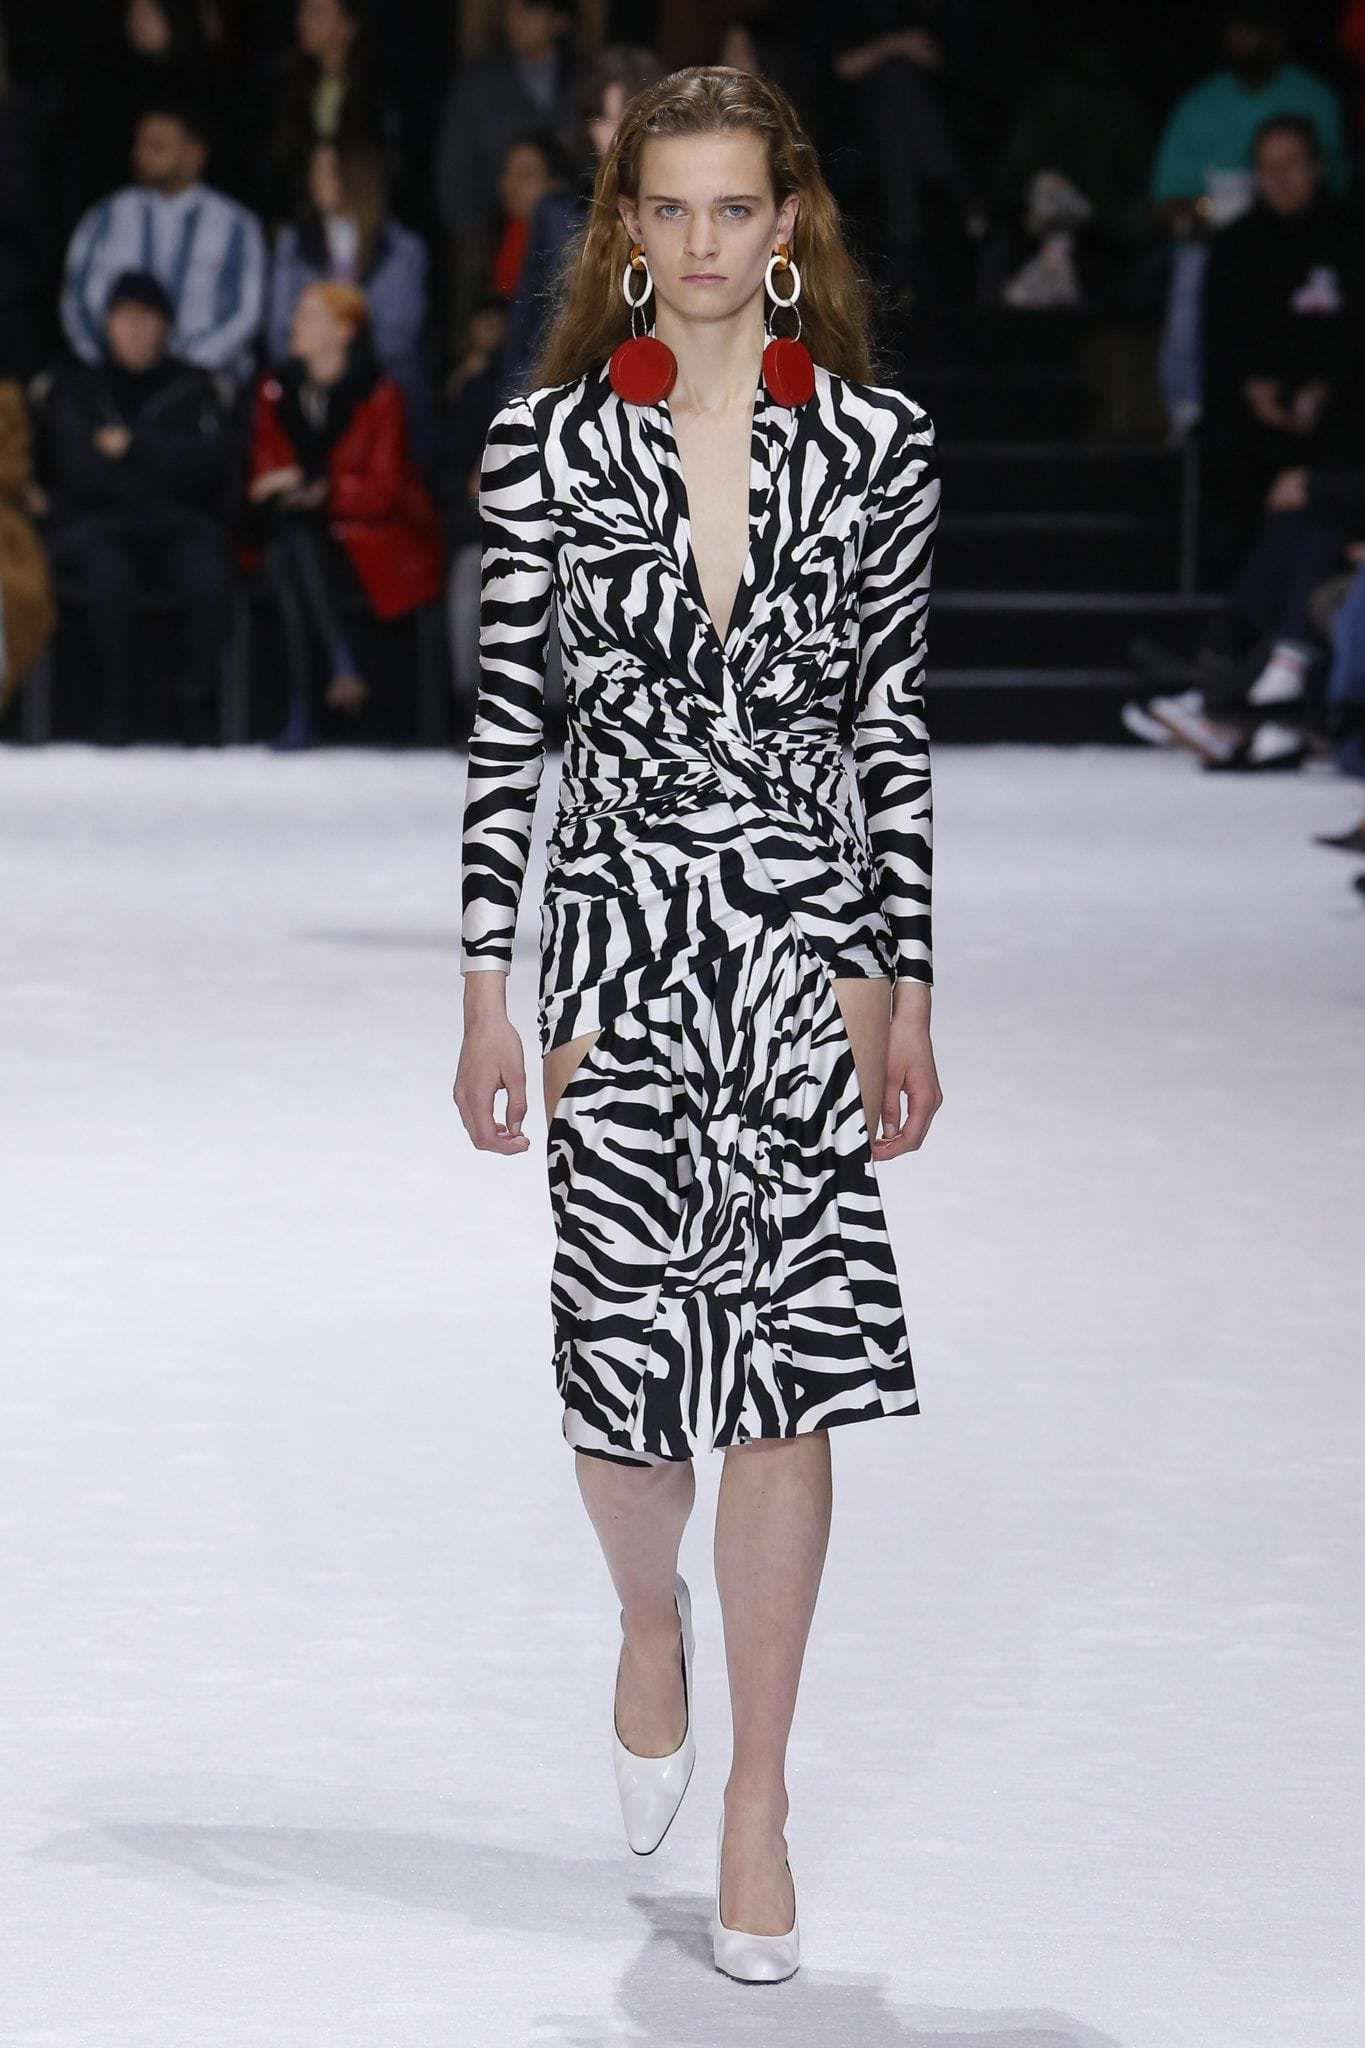 Fall Winter 2018 2019 Trends - Fashion Week Coverage ...